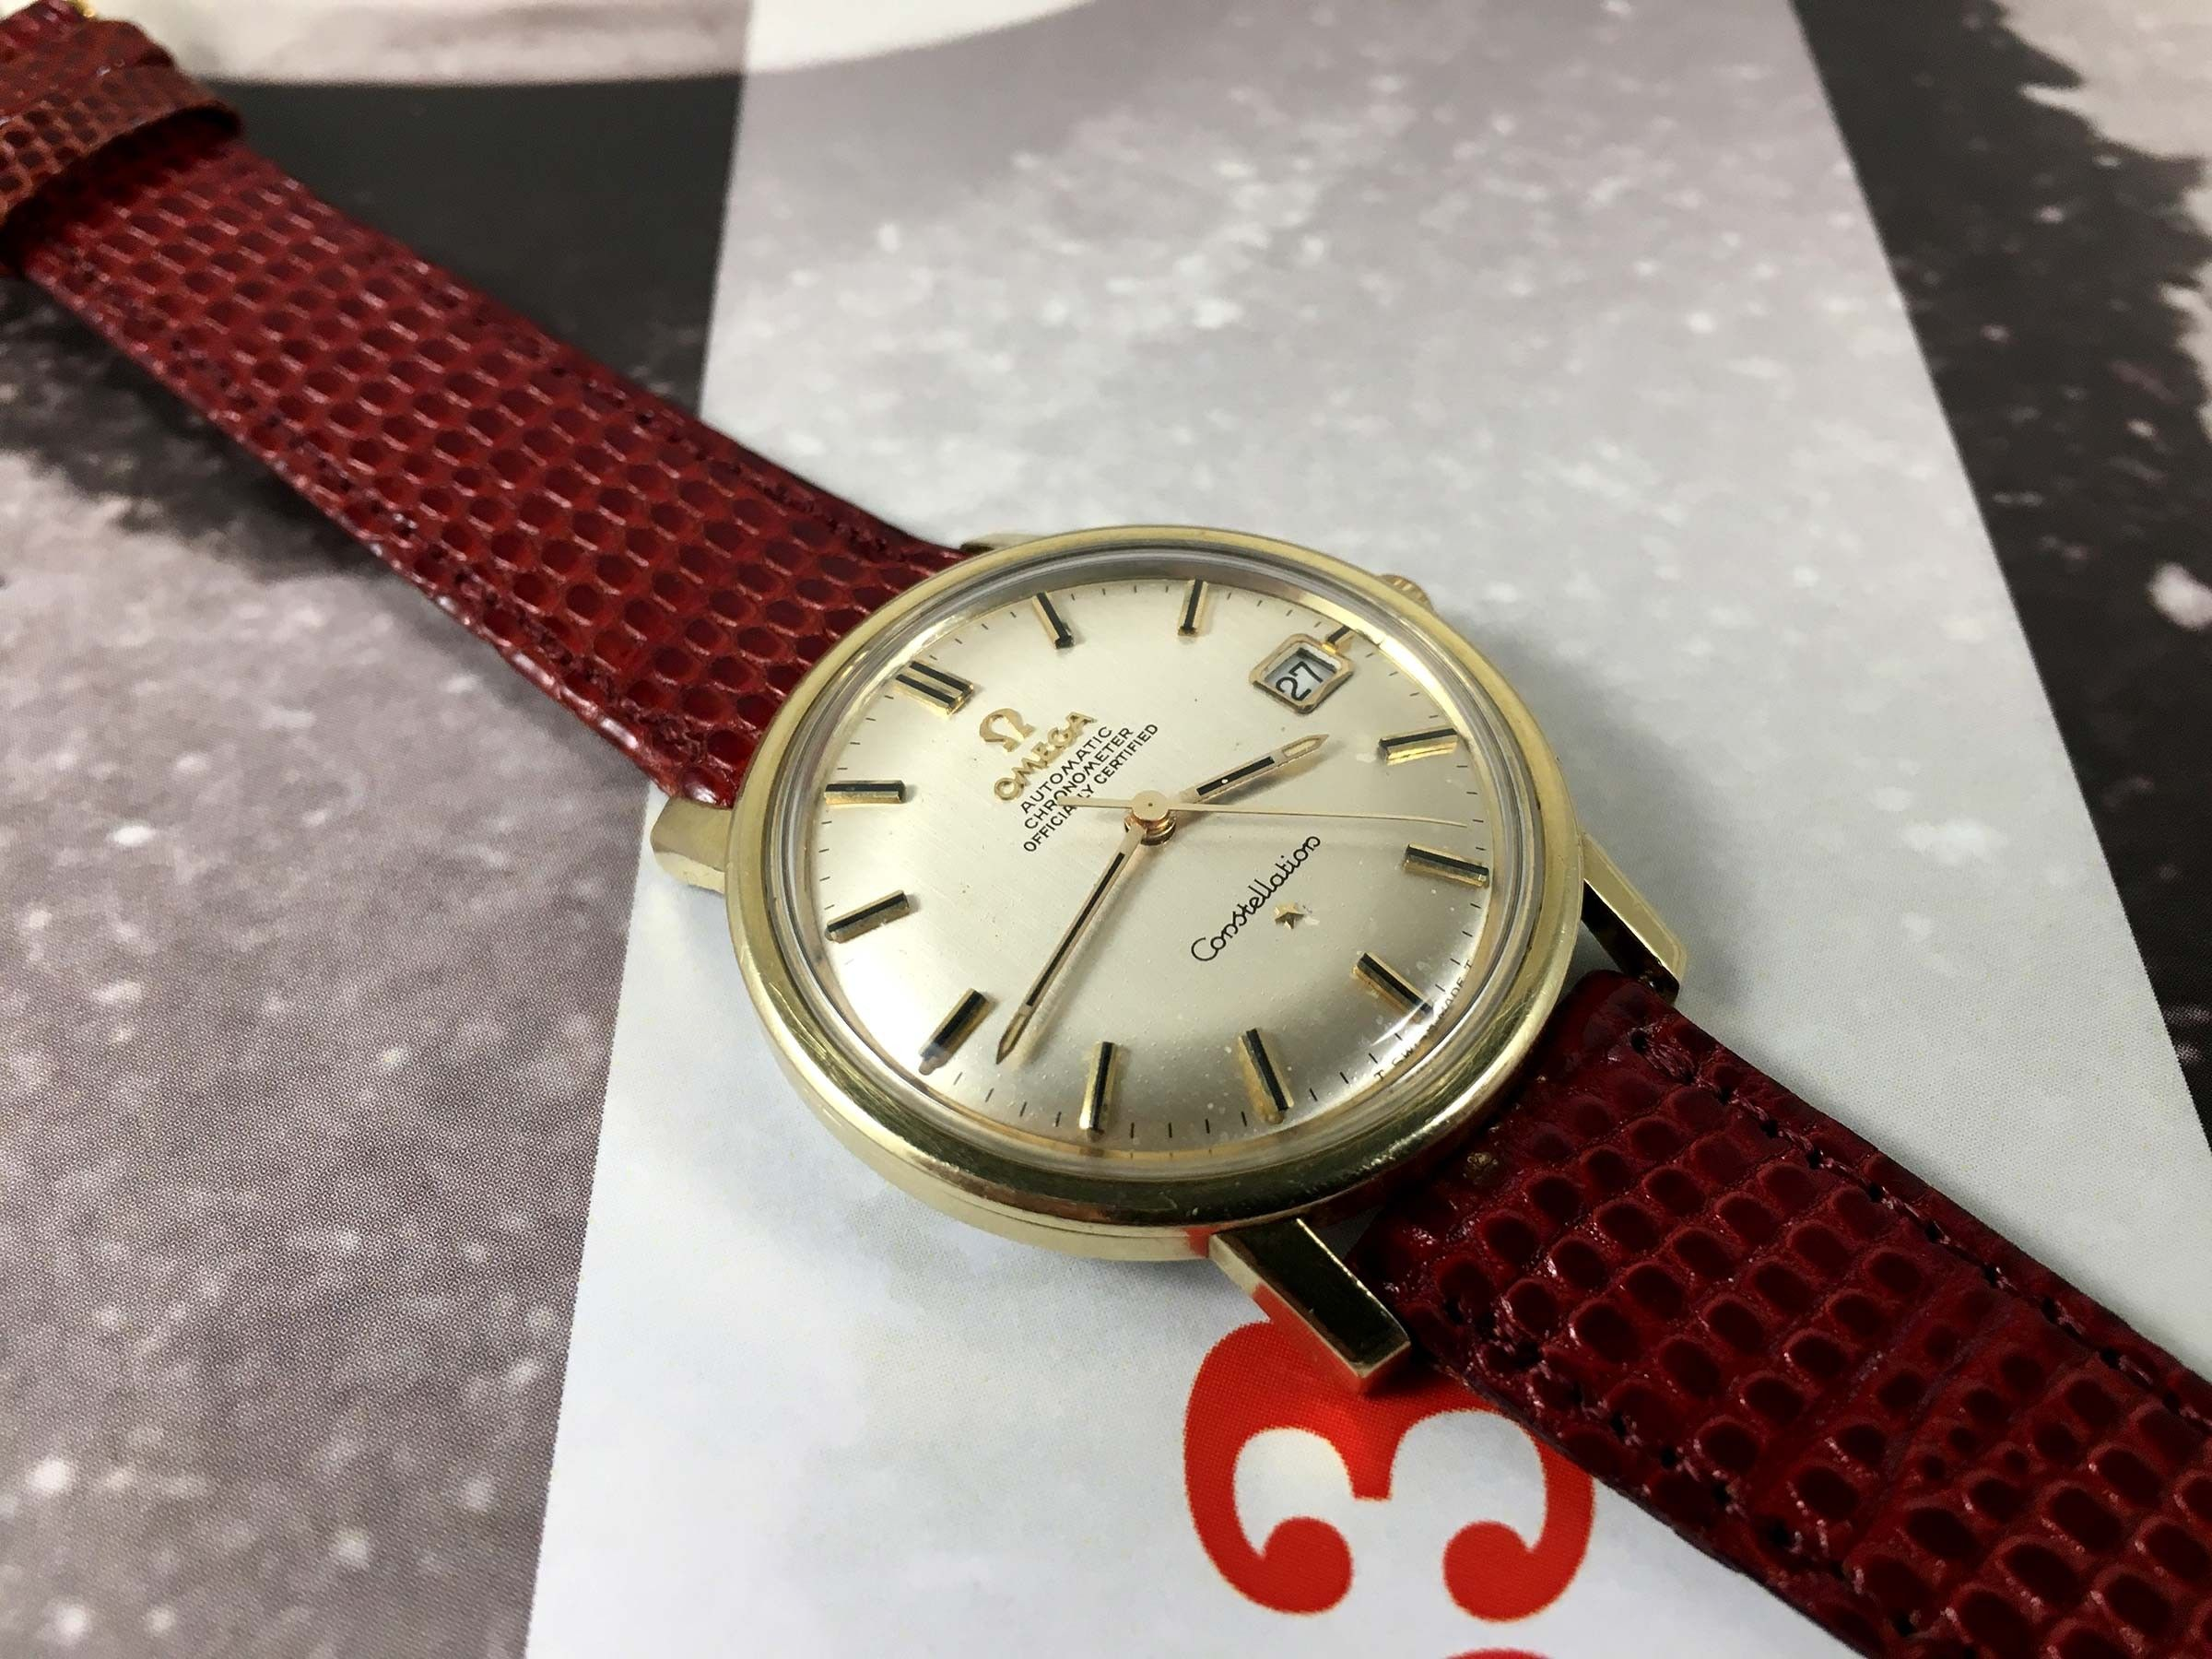 Omega Constellation Chronometer Officially Certified Vintage Swiss